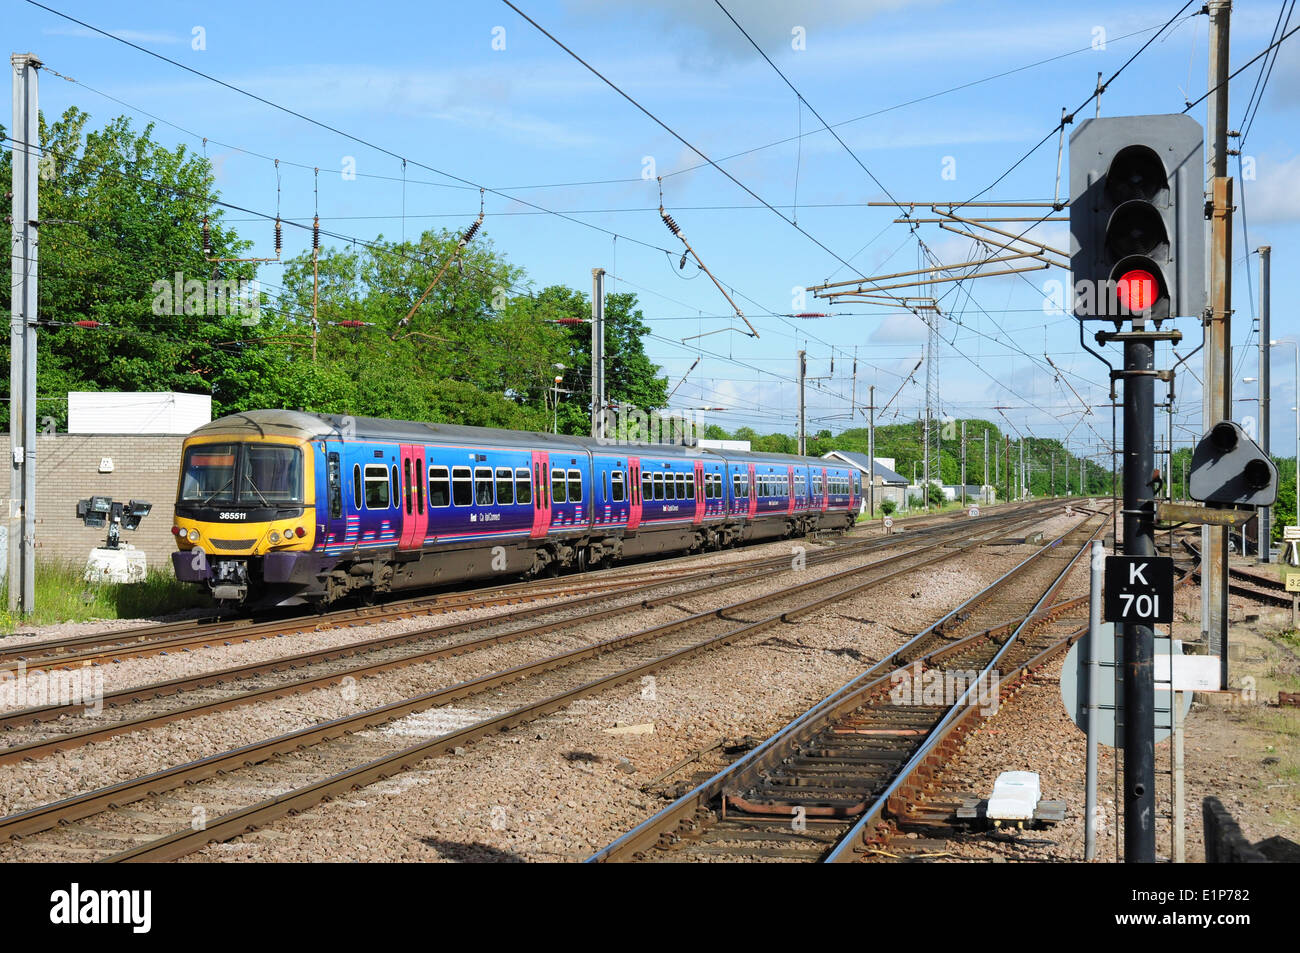 Class 365 DMU heads north from Hitchin, Hertfordshire, England, UK - Stock Image